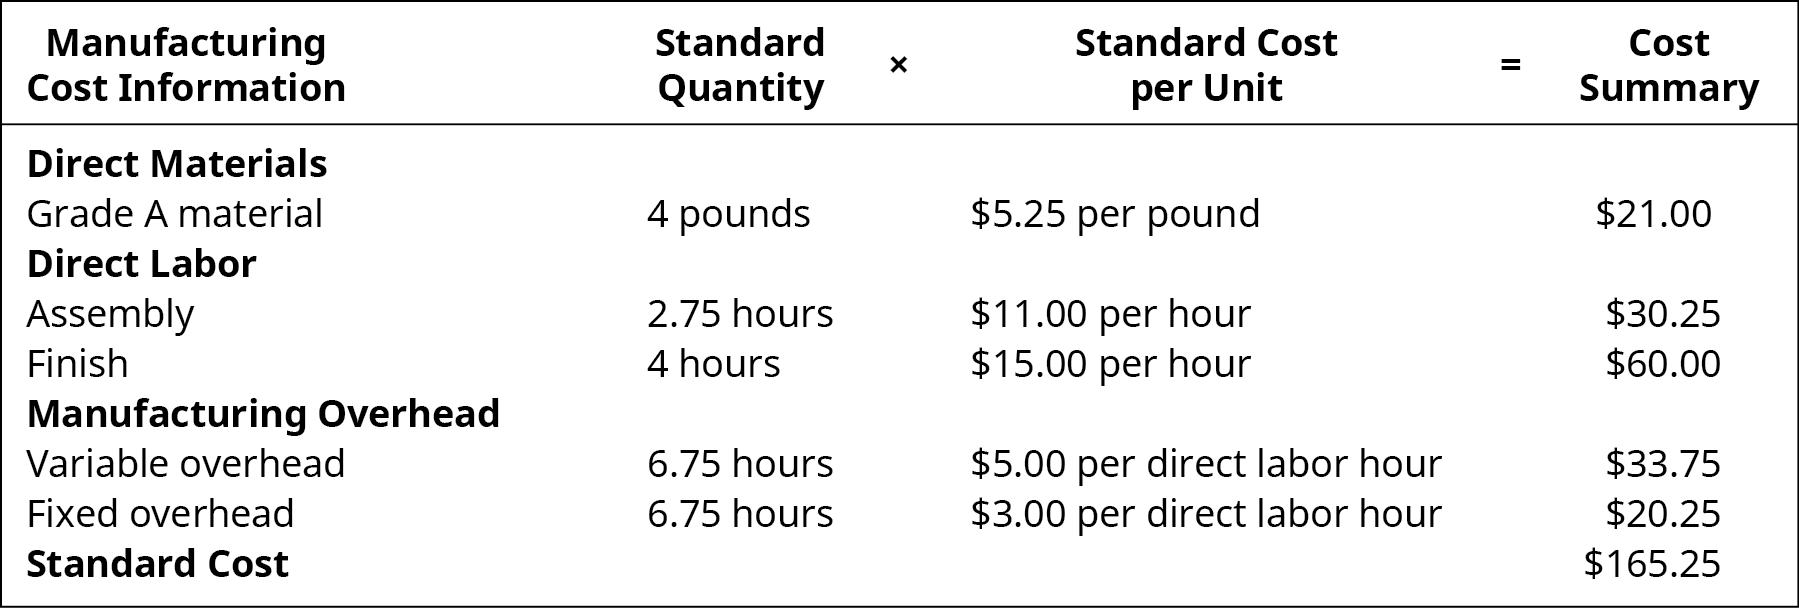 Manufacturing Cost Information: Standard Quantity times Standard Cost per Unit equals Cost Summary. Direct Materials Grade A material, 4 pounds, $5.25 per pound, $21.00. Direct Labor Assembly, 2.75 hours, $11.00 per hour, $30.25. Direct Labor Finish, 4 hours, $15.00 per hour, $60.00. Manufacturing Overhead Variable, 6.75 hours, $5.00 per direct labor hour, $33.75. Manufacturing Overhead Fixed, 6.75 hours, $3.00 per direct labor hour, $20.25. Standard Cost, -, -, $165.25.